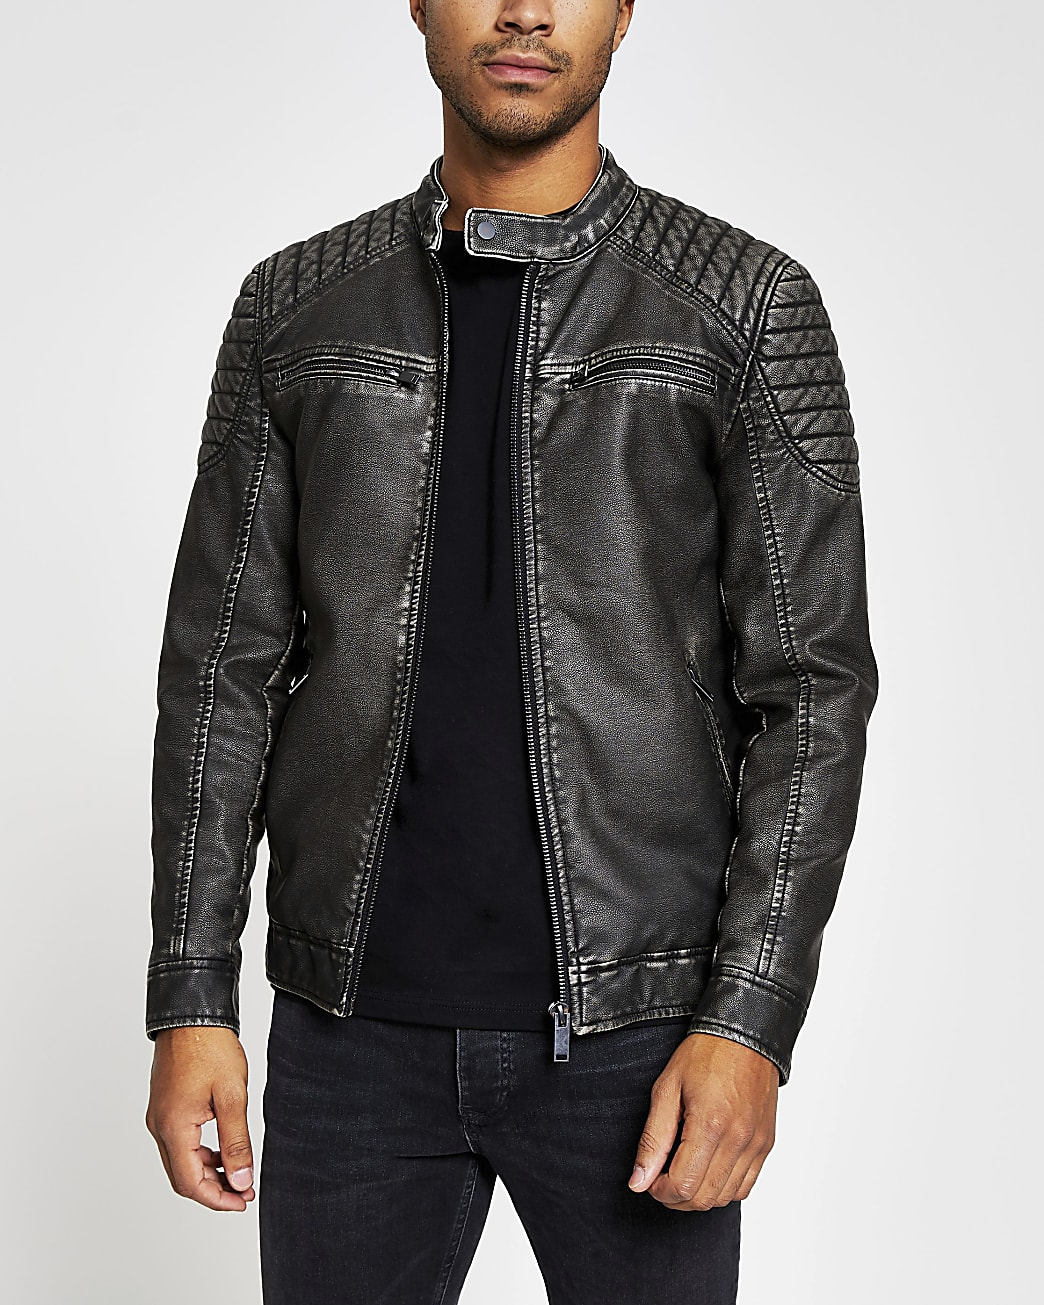 Charcoal grey faux leather quilted jacket